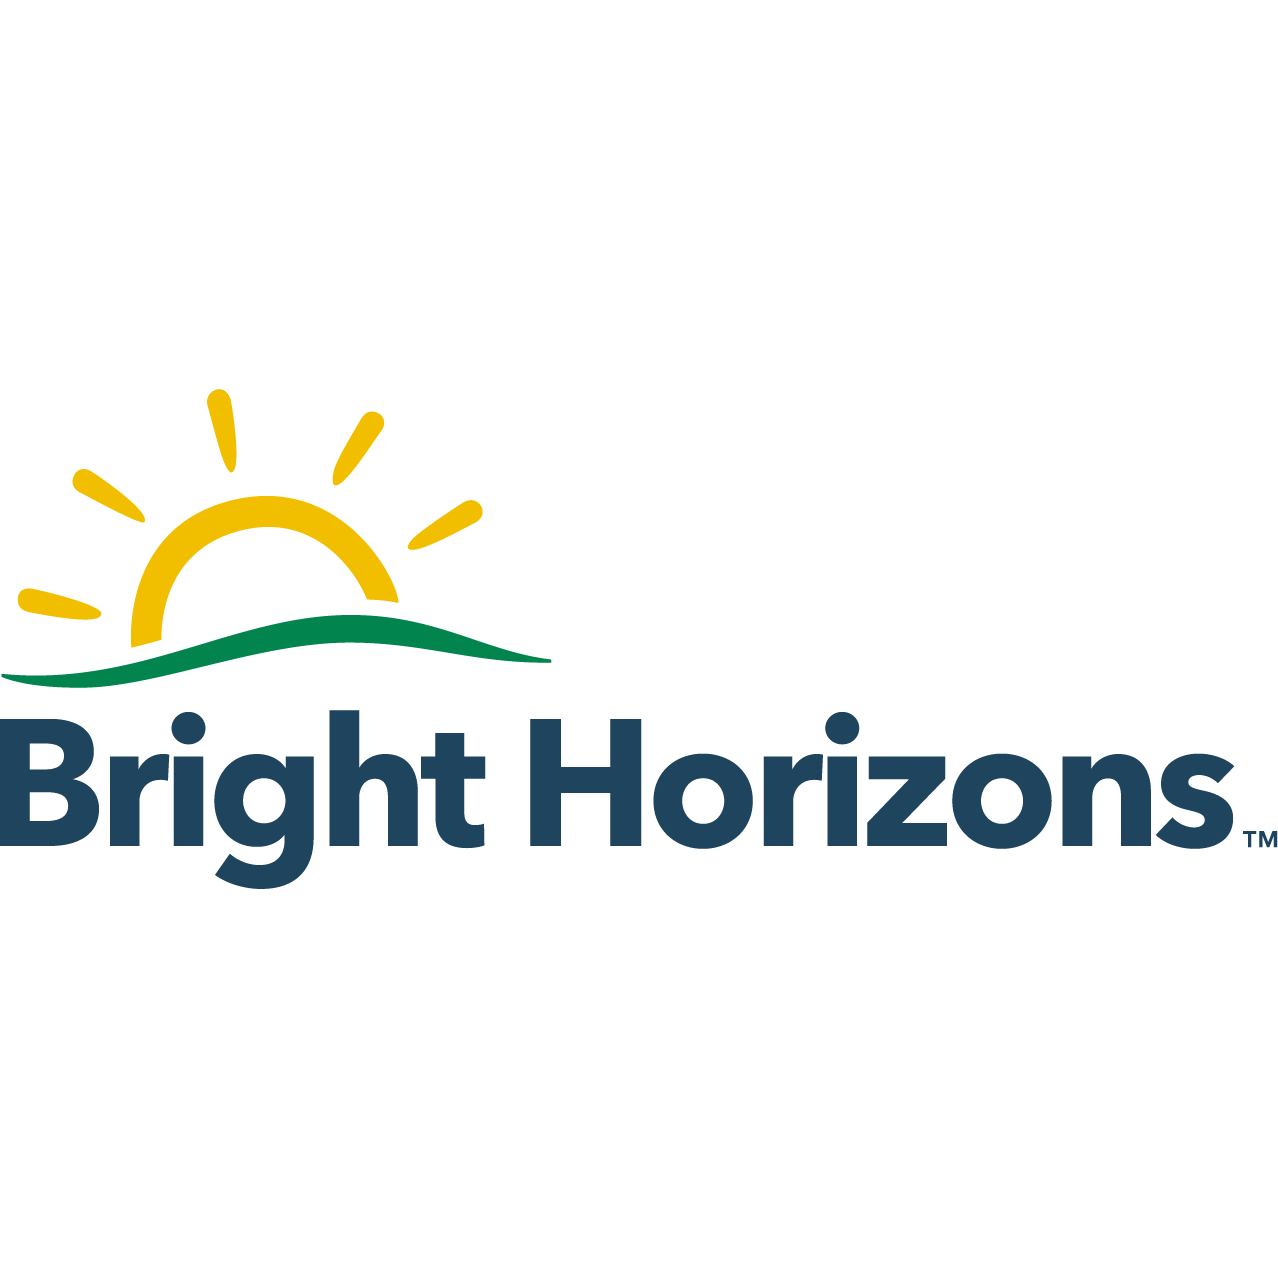 Bright Horizons Sale Day Nursery and Preschool - Sale, Lancashire M33 3WE - 03333 059548 | ShowMeLocal.com